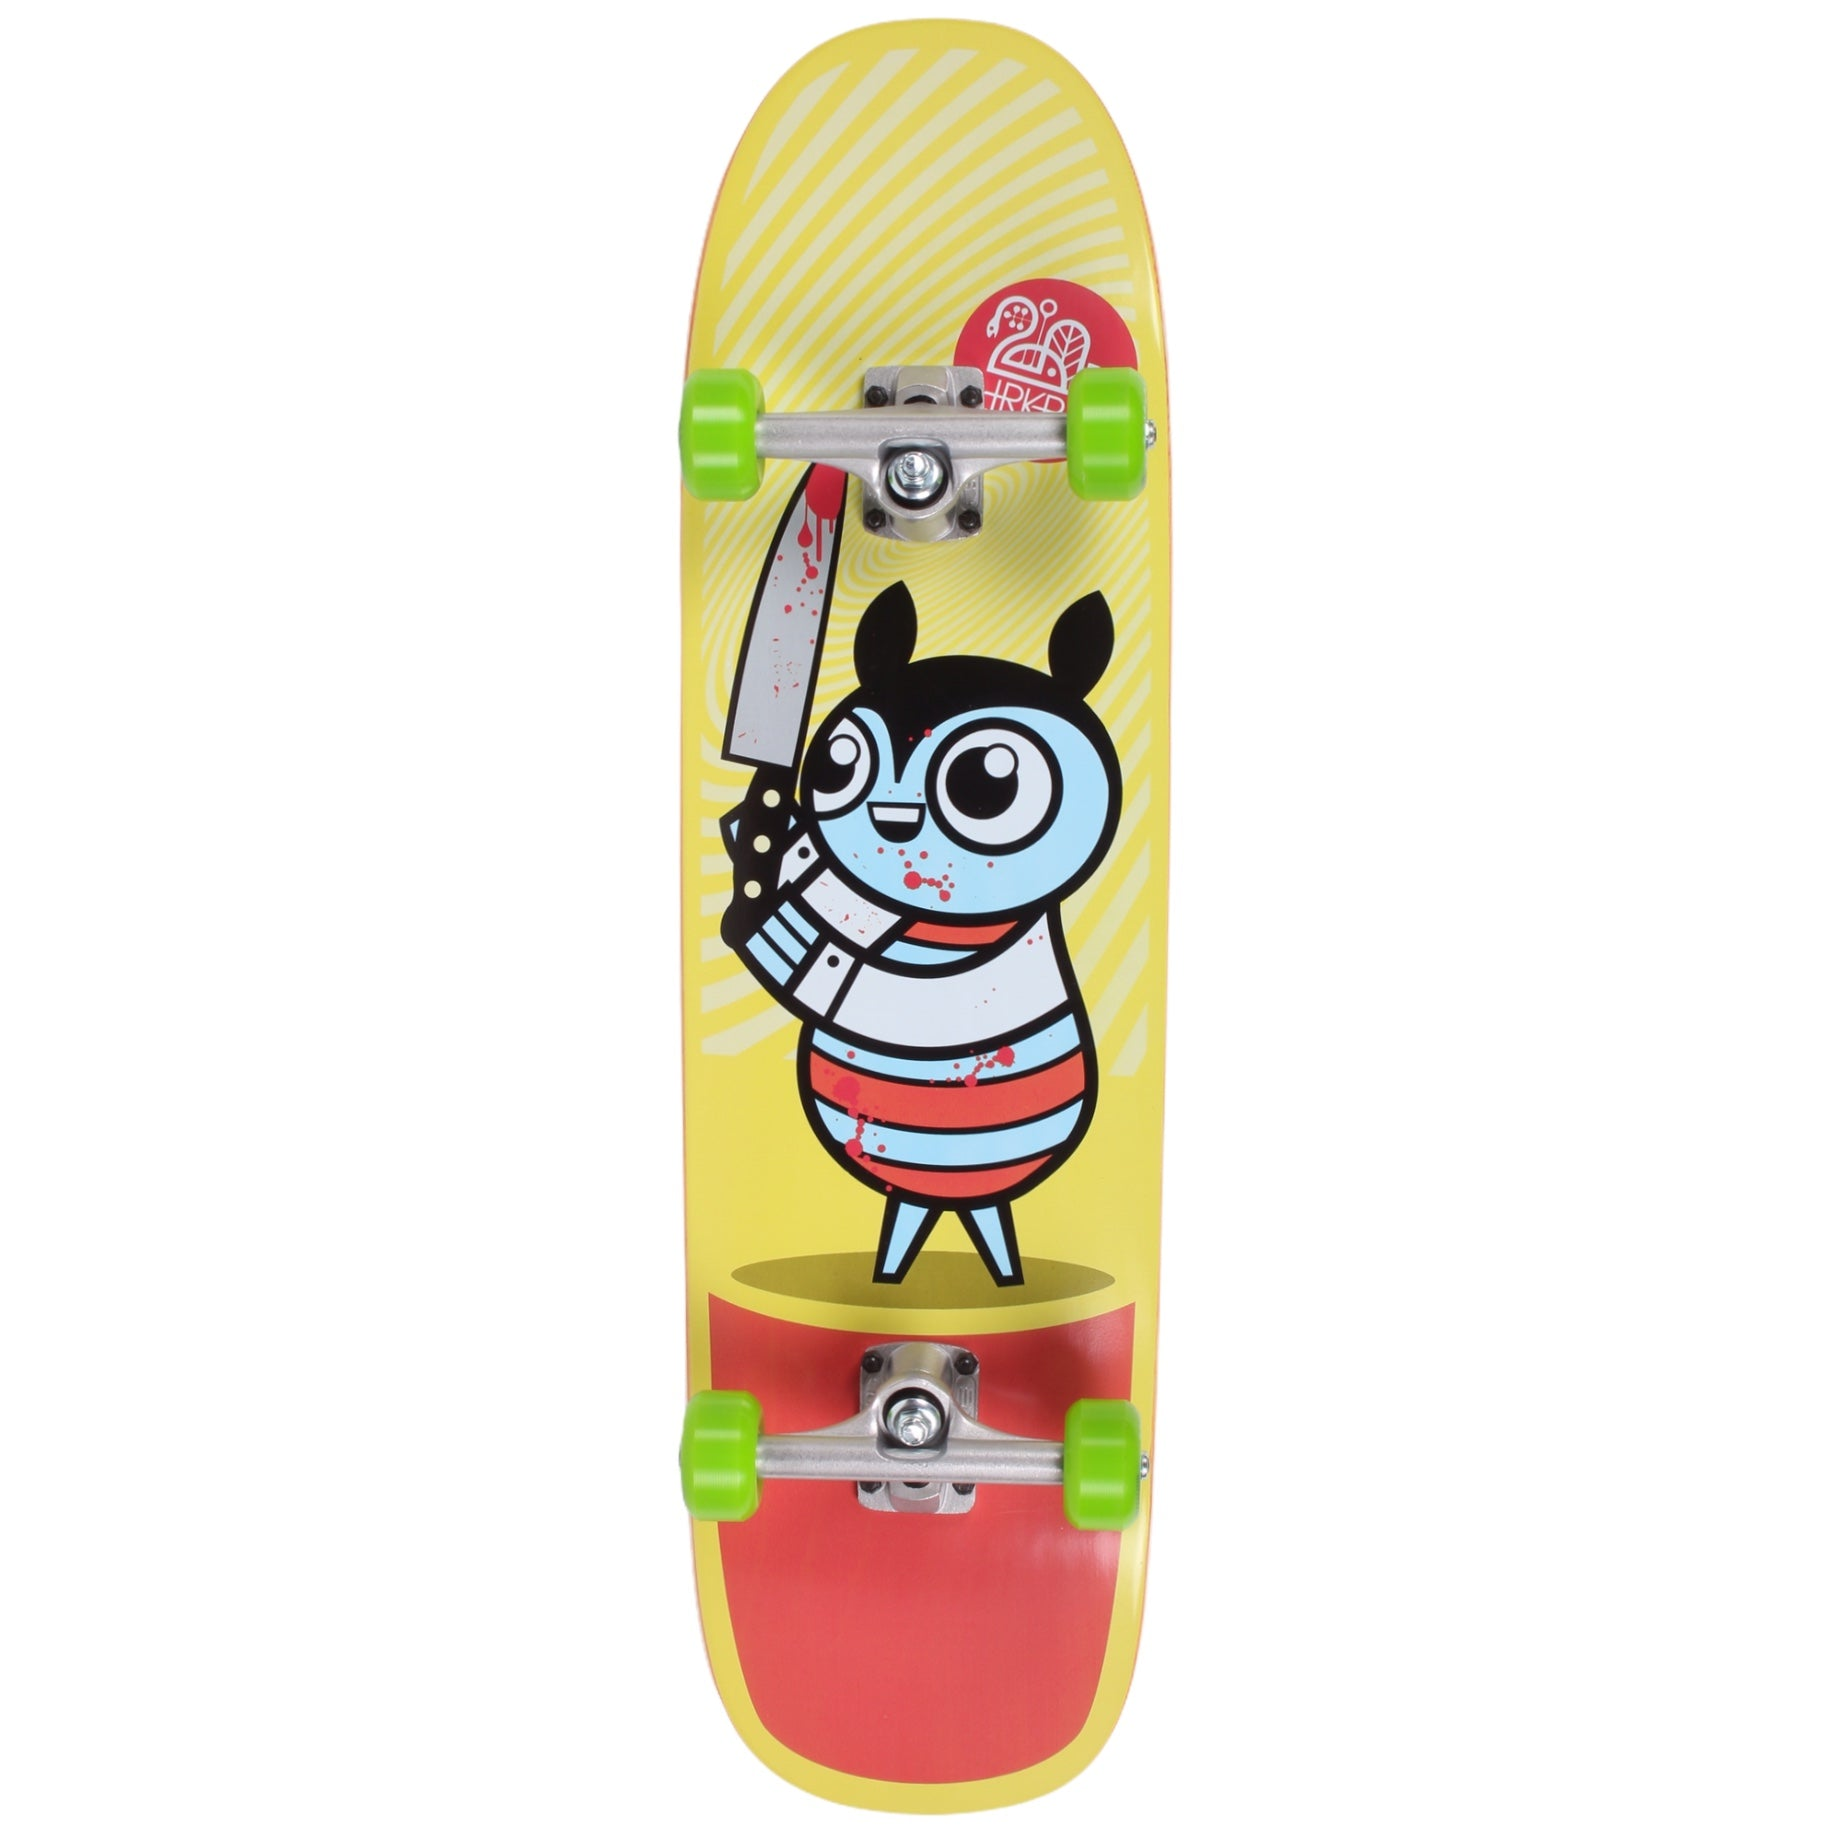 "Darkroom Murderer Bug Hybrid Complete Skateboard 8.75"" Shaped"